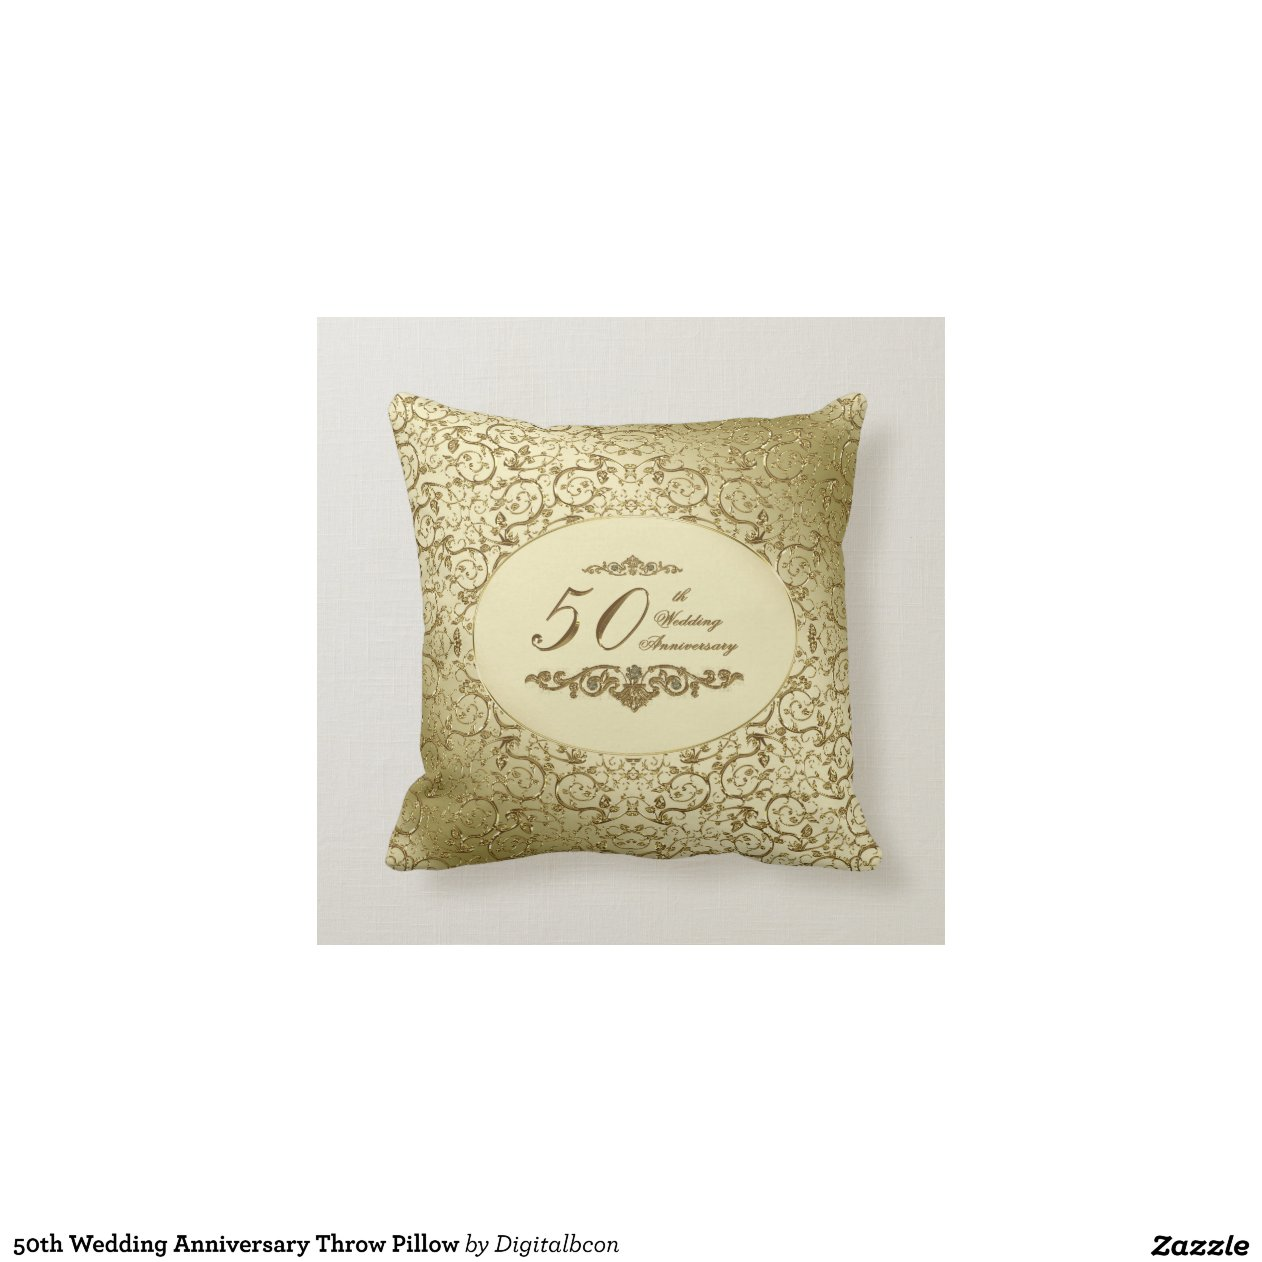 50th Wedding Anniversary Personalized Pillow | Zazzle |50th Wedding Anniversary Pillows